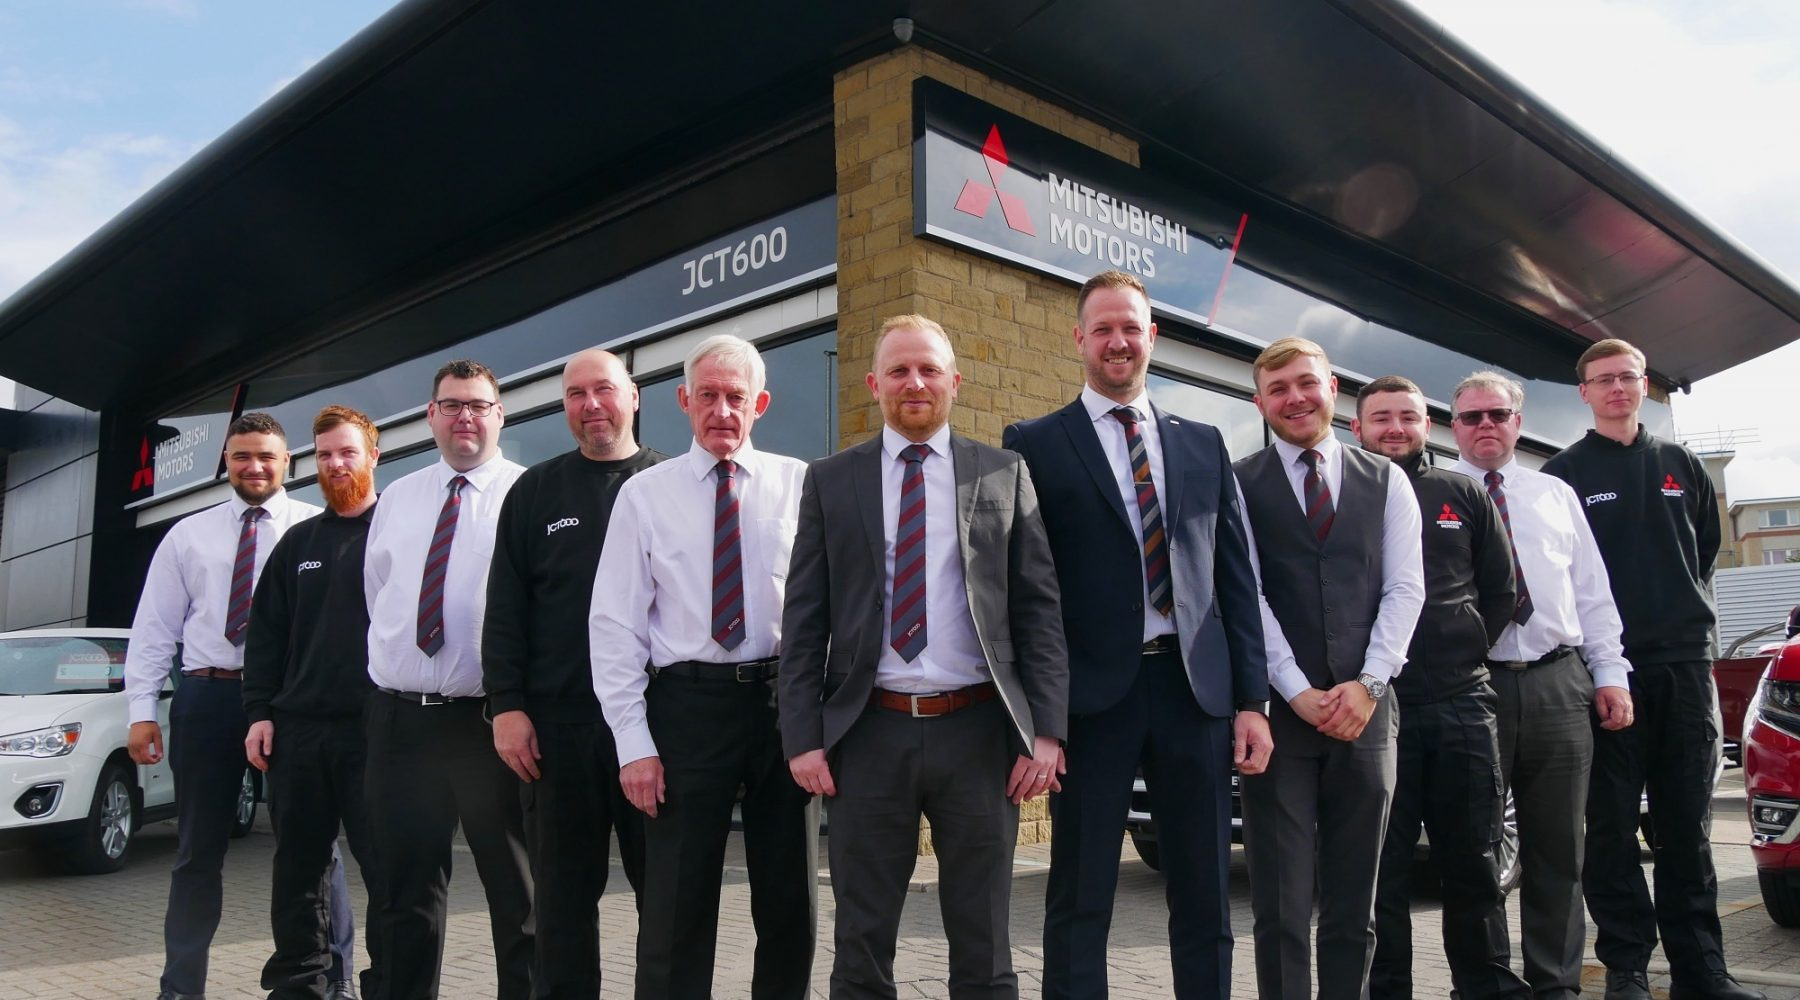 JCT600 opens new dealership in Bradford after Mitsubishi…